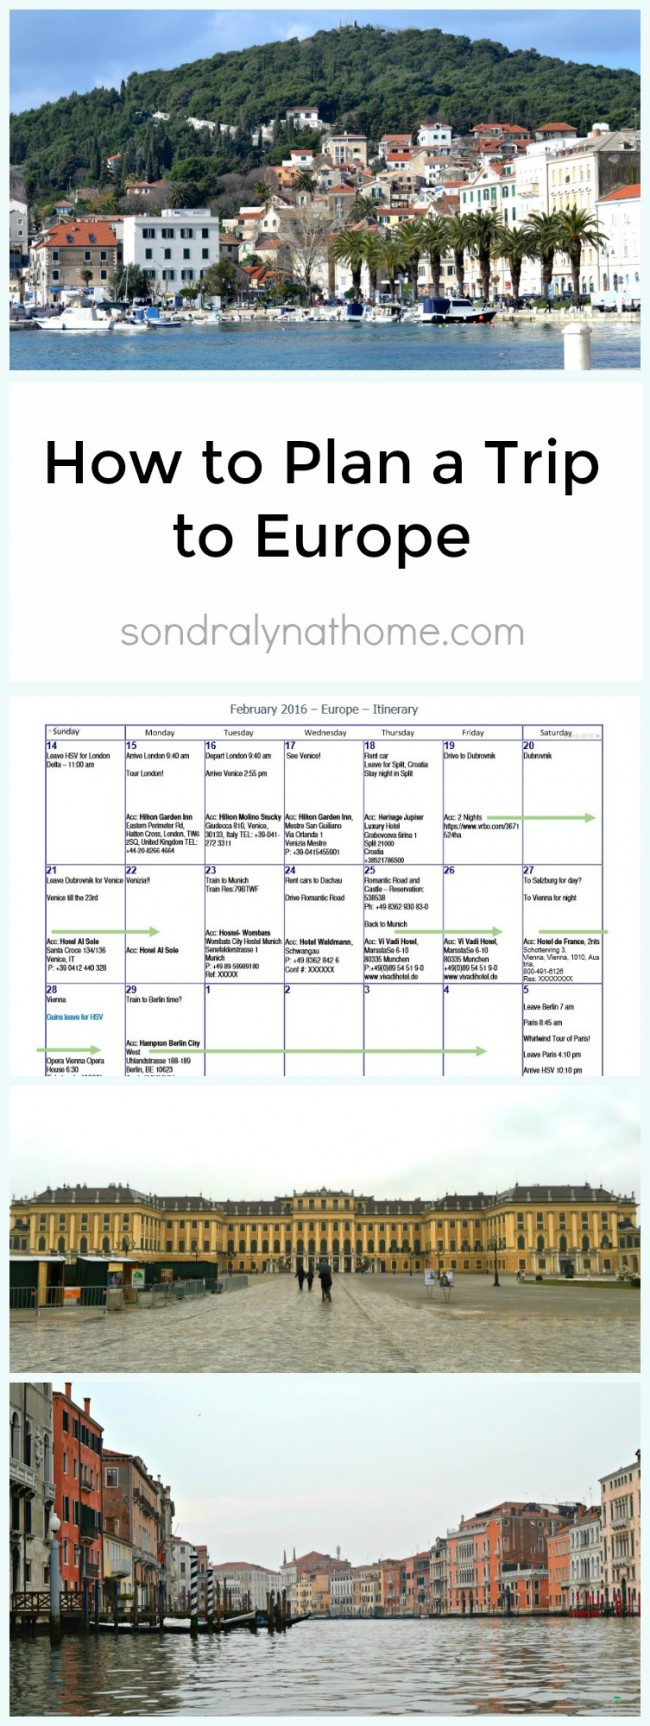 How to Plan a Trip to Europe - Sondra Lyn at Home.com